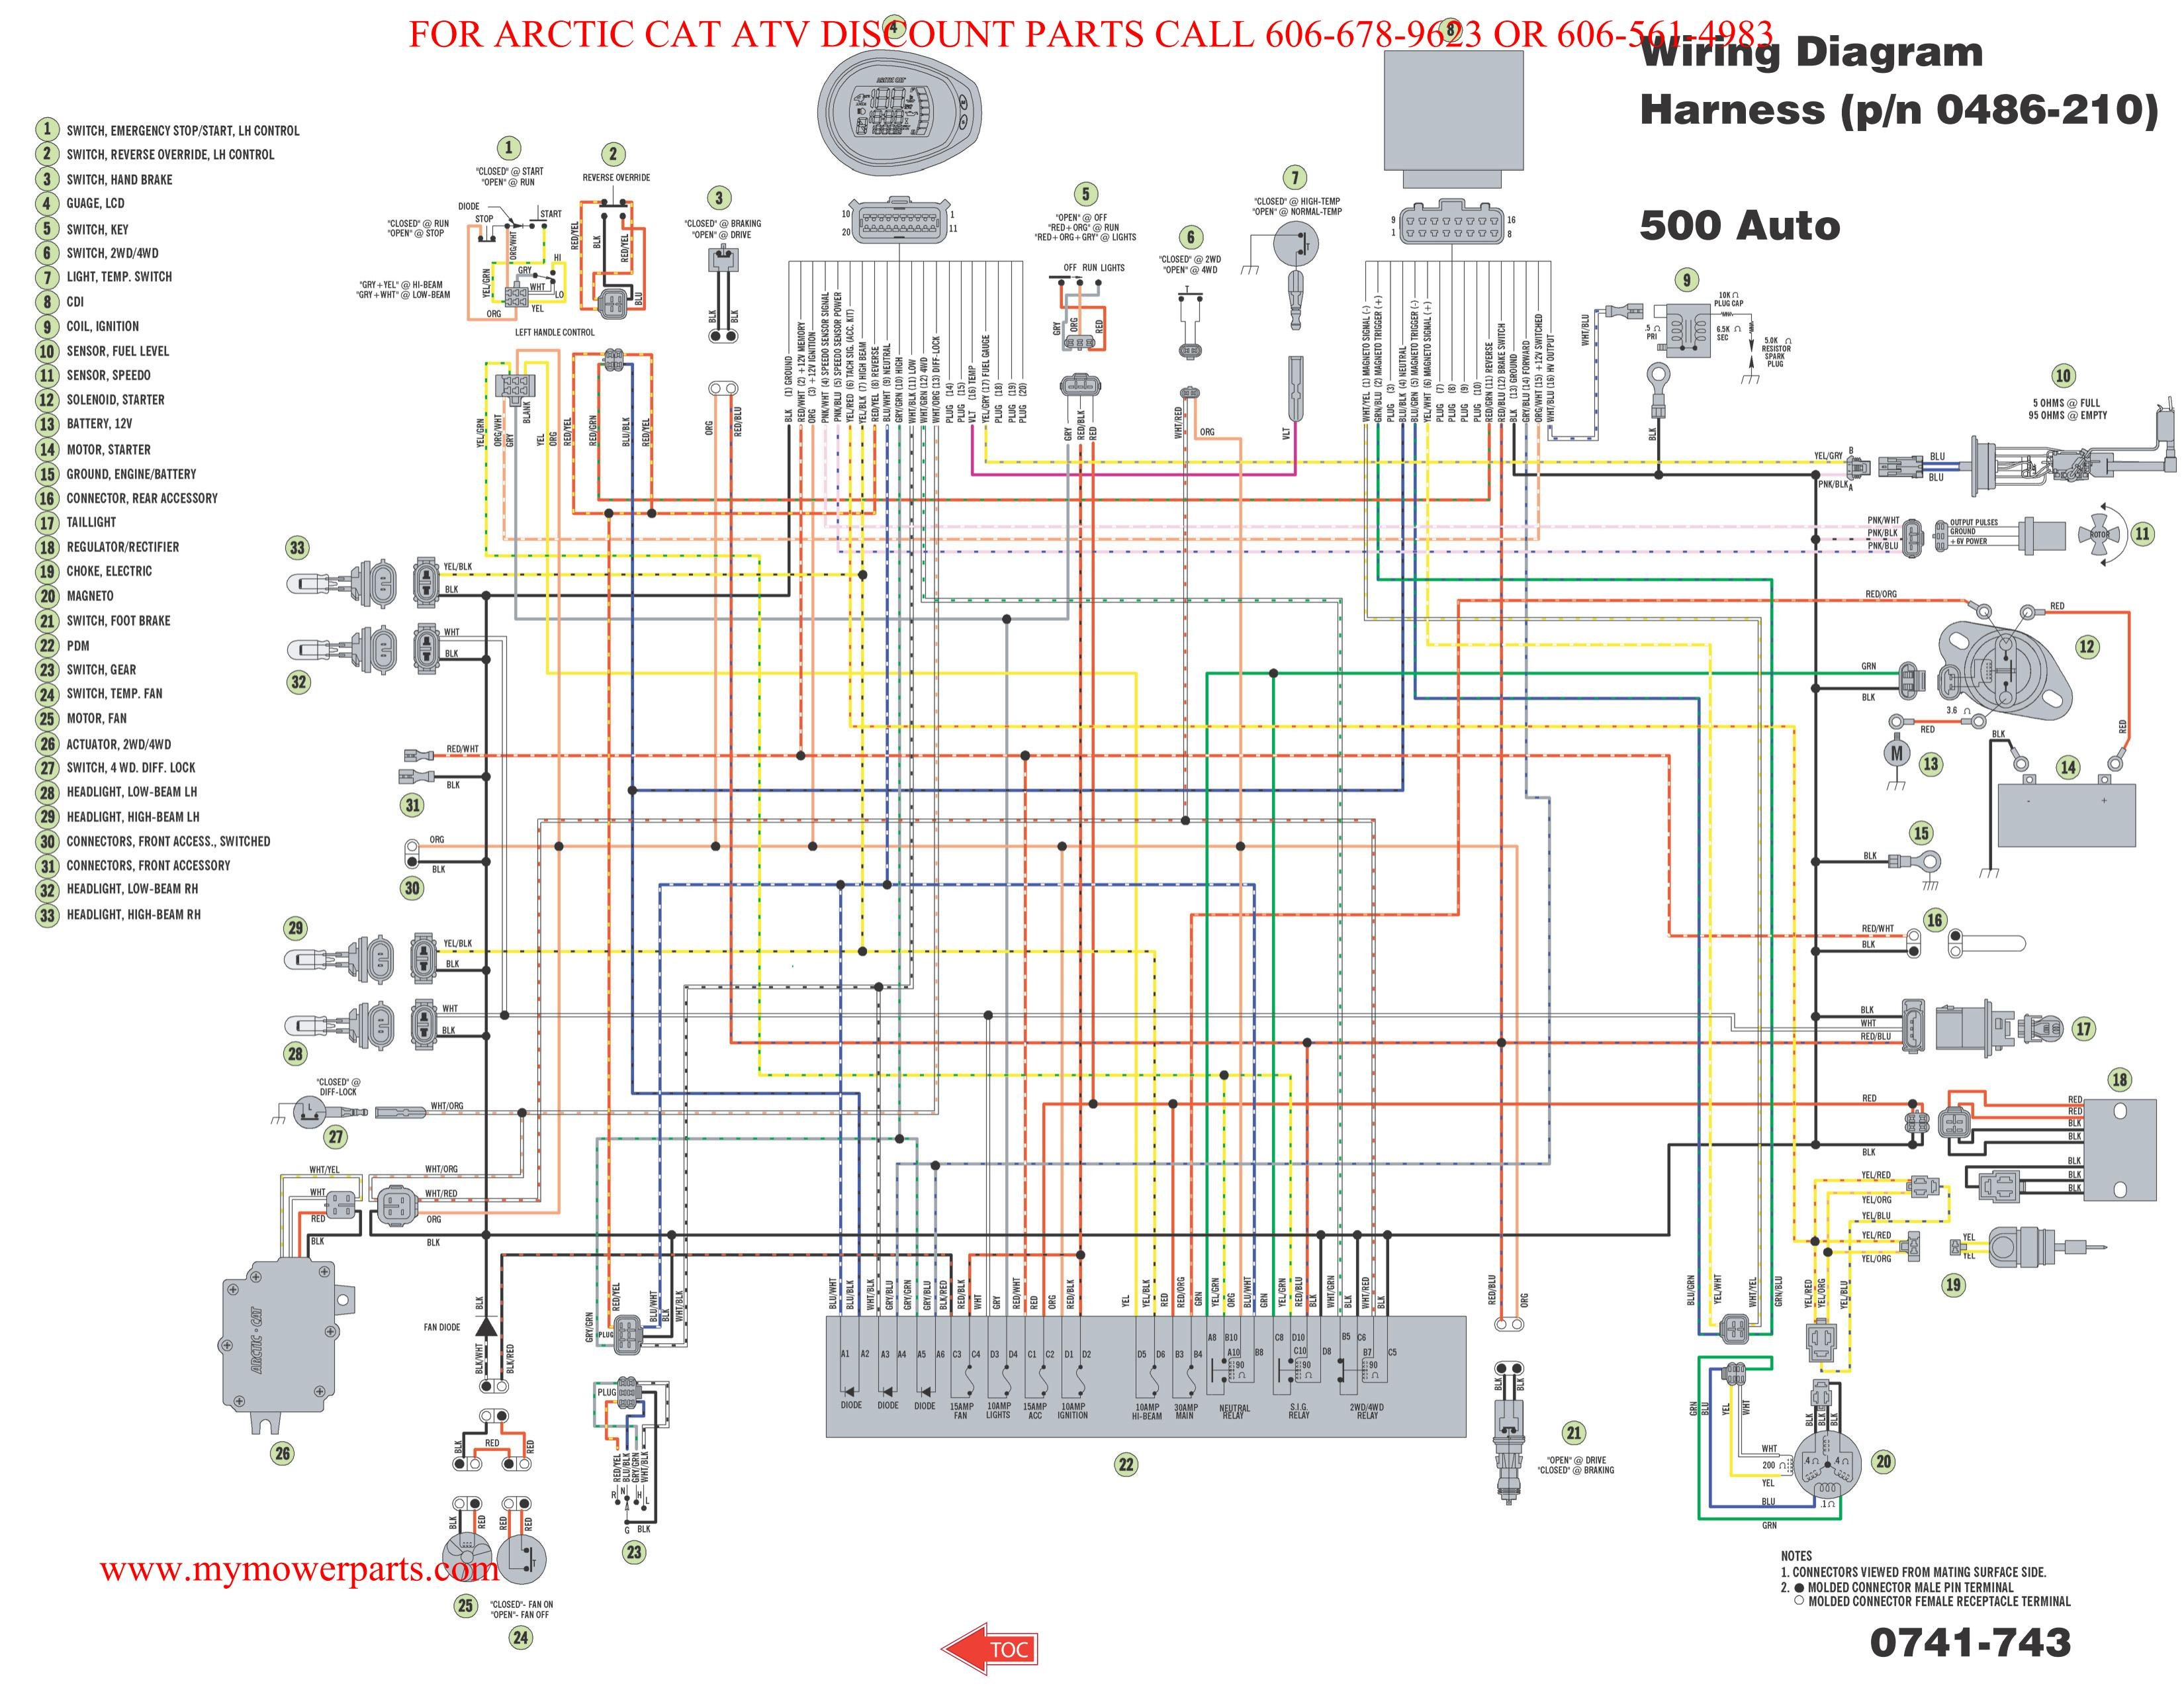 Arctic Cat 650 V Twin Wiring Diagram